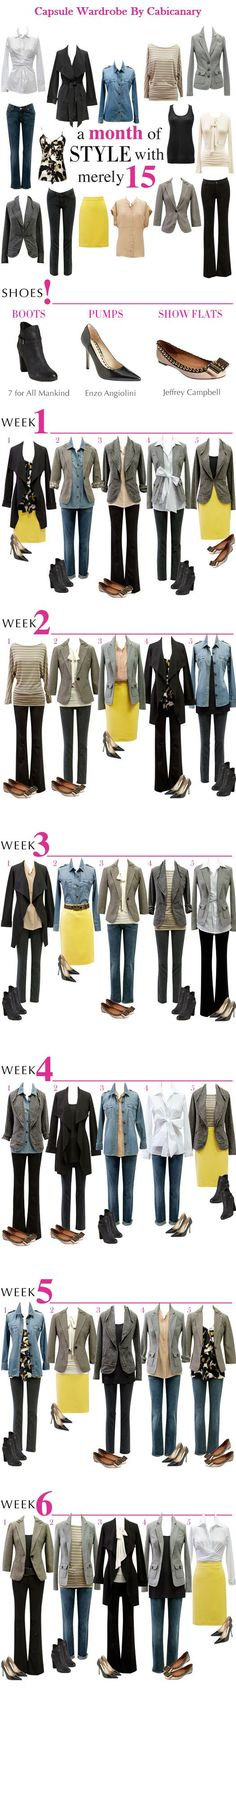 30 Days of Style from 15 Pieces